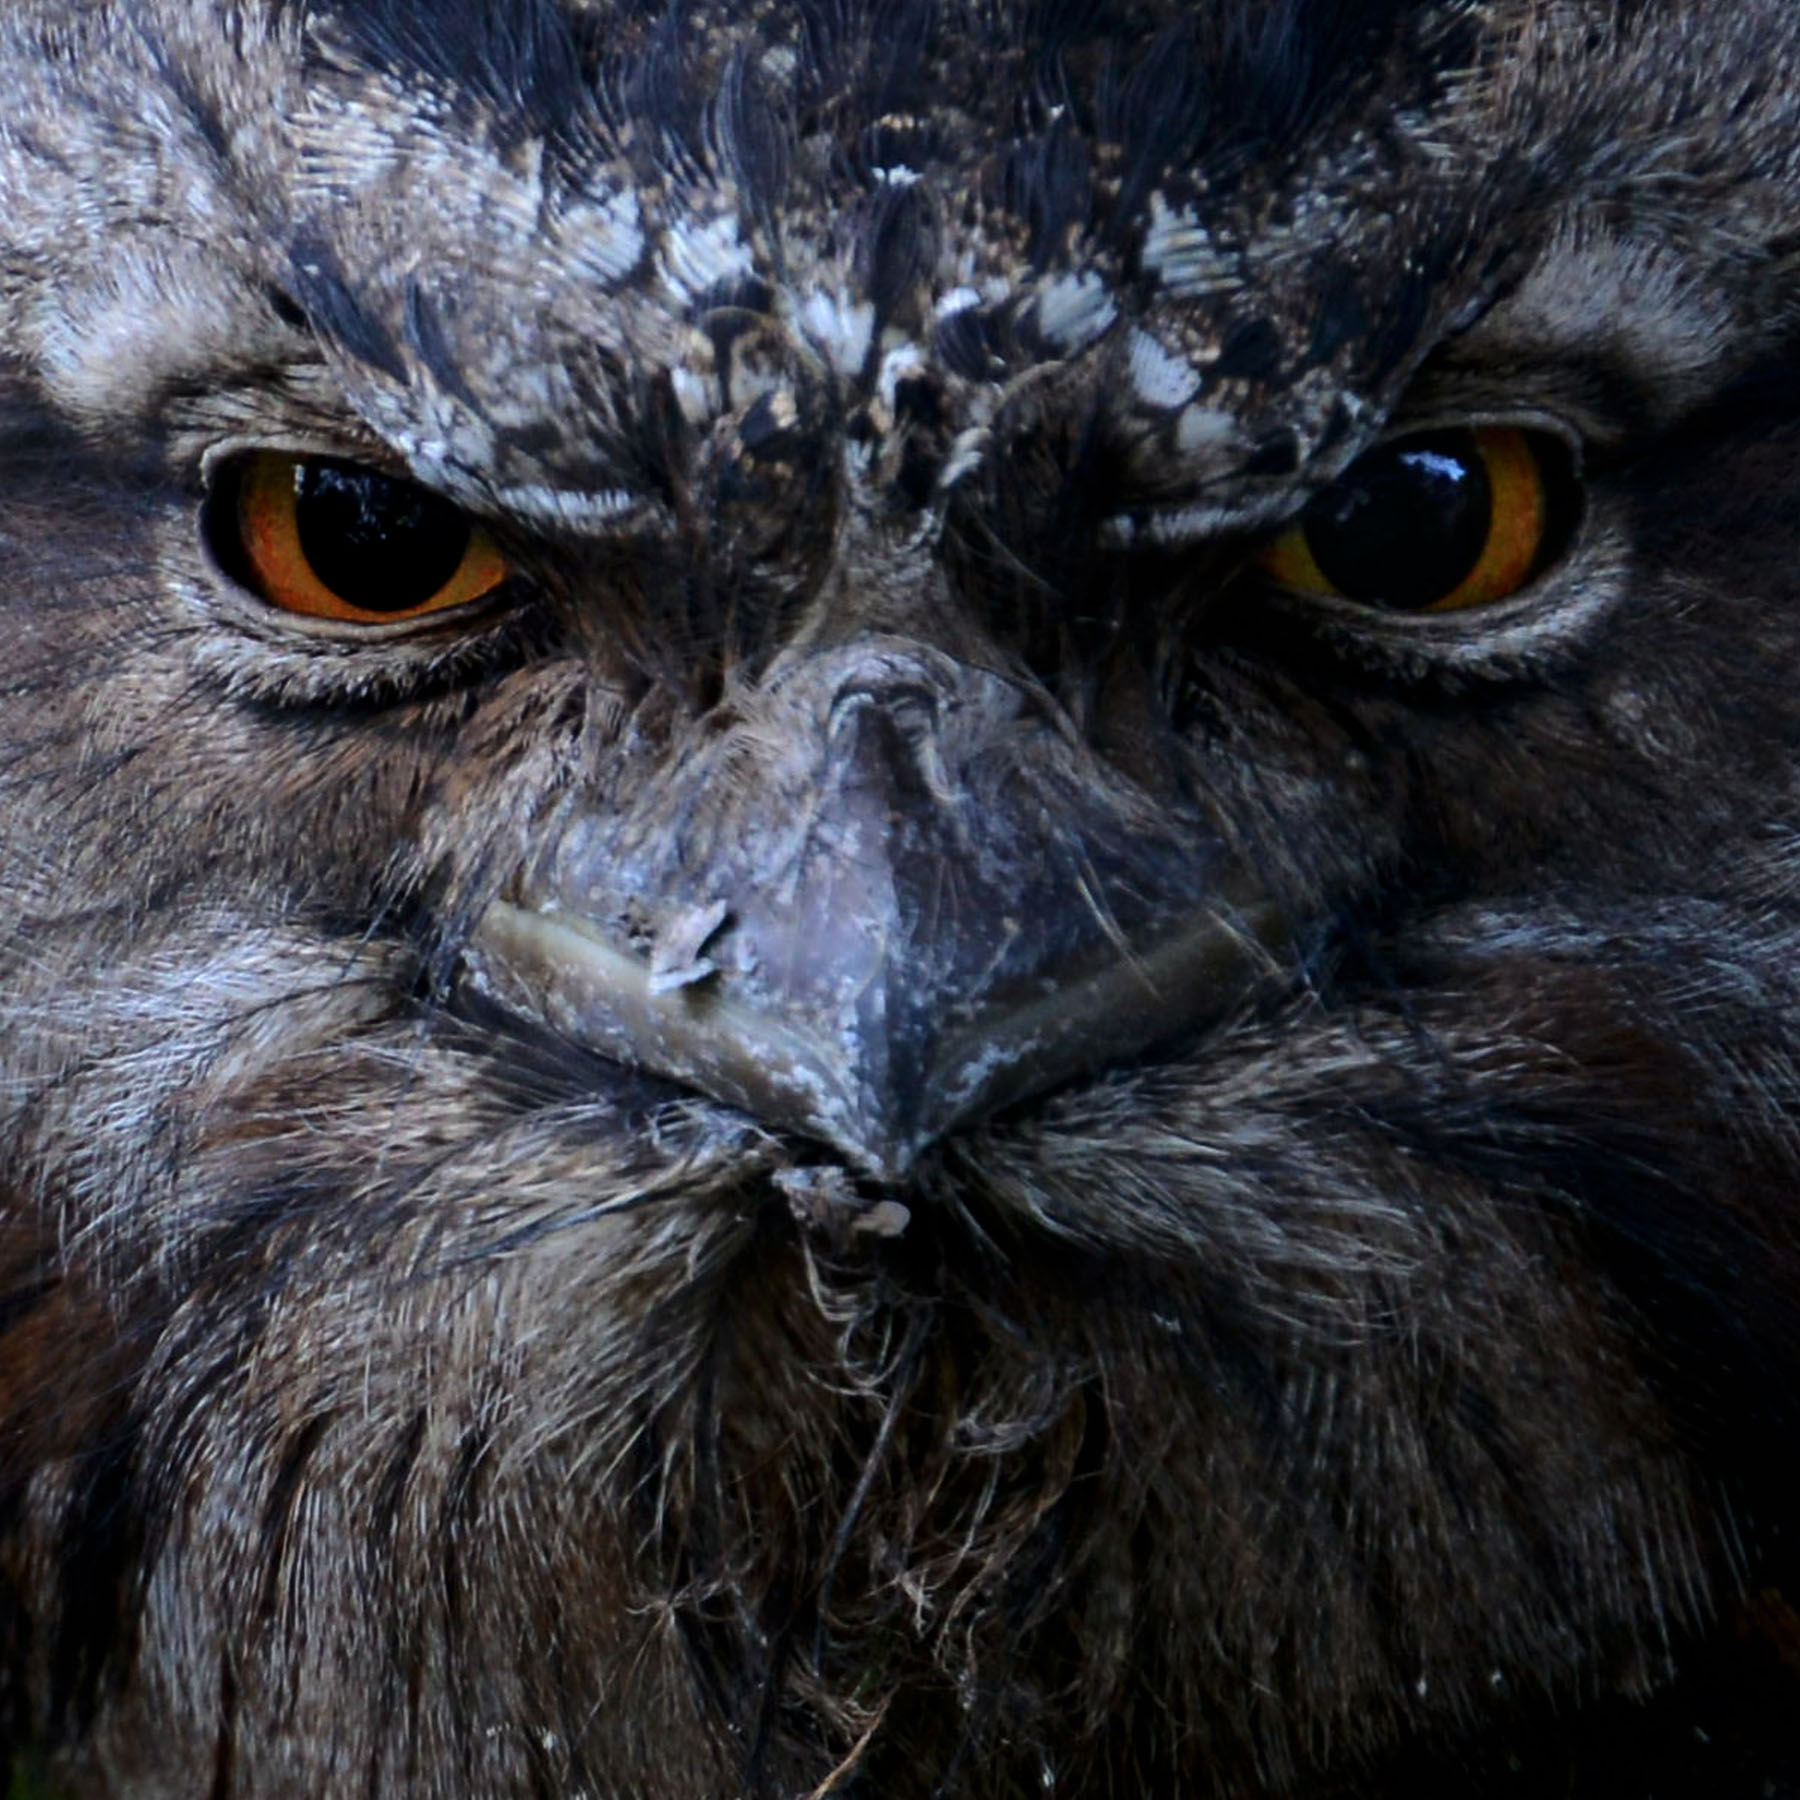 Karen_Burgess_Encounter_ Tawnie Frogmouth_2.jpg